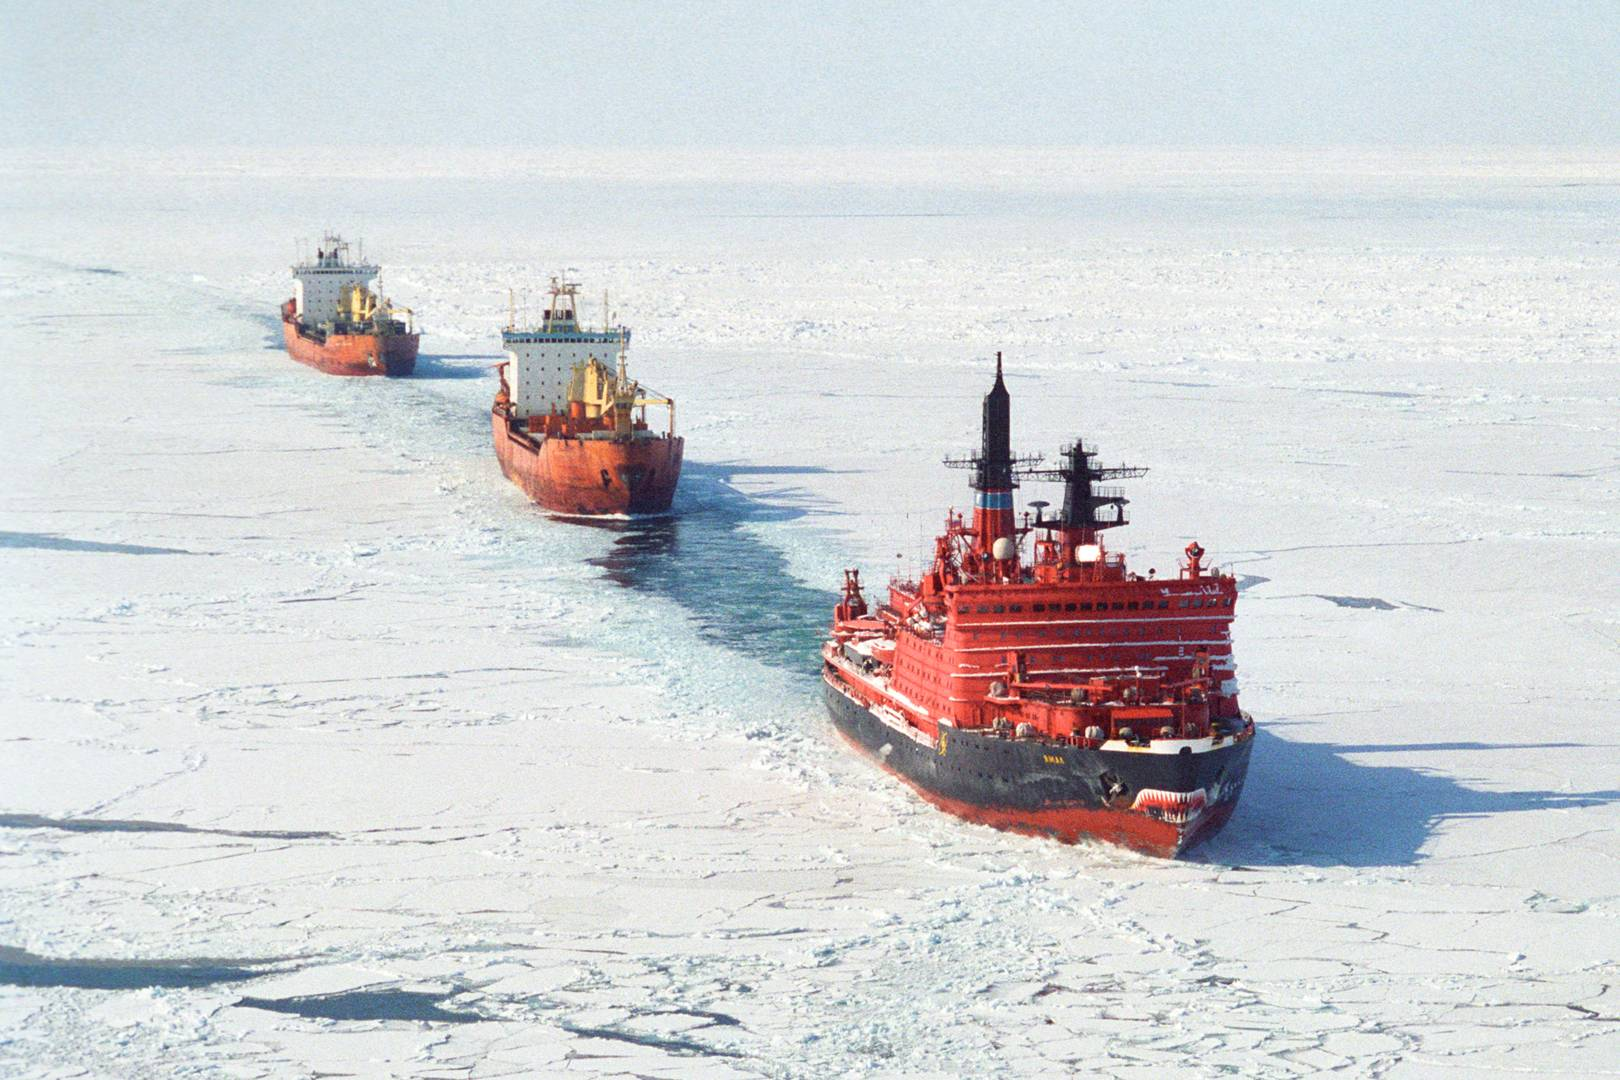 As the Arctic melts, China and Russia struggle for control